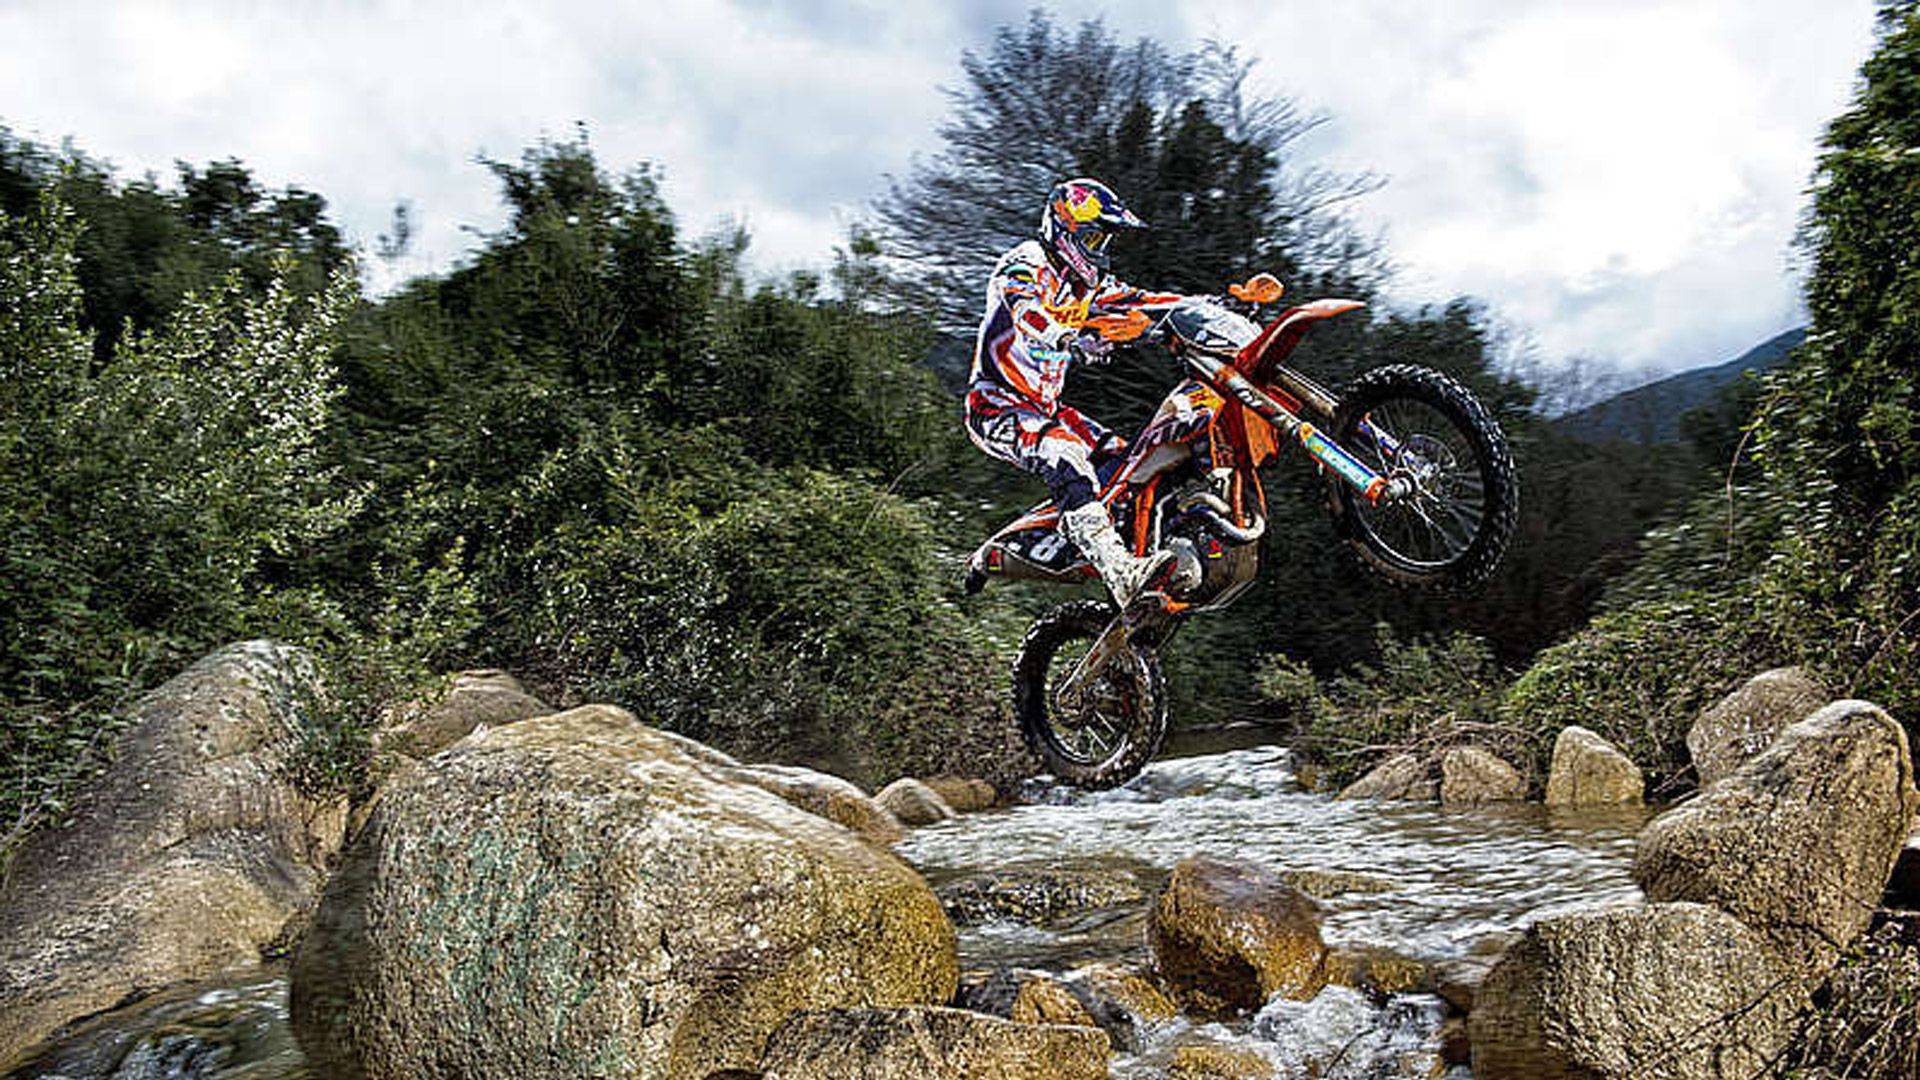 2014 Ktm 350 Exc F Specs And Wallpapers Ktm Dirtbikes F Wallpaper Download ktm exc wallpaper hd background